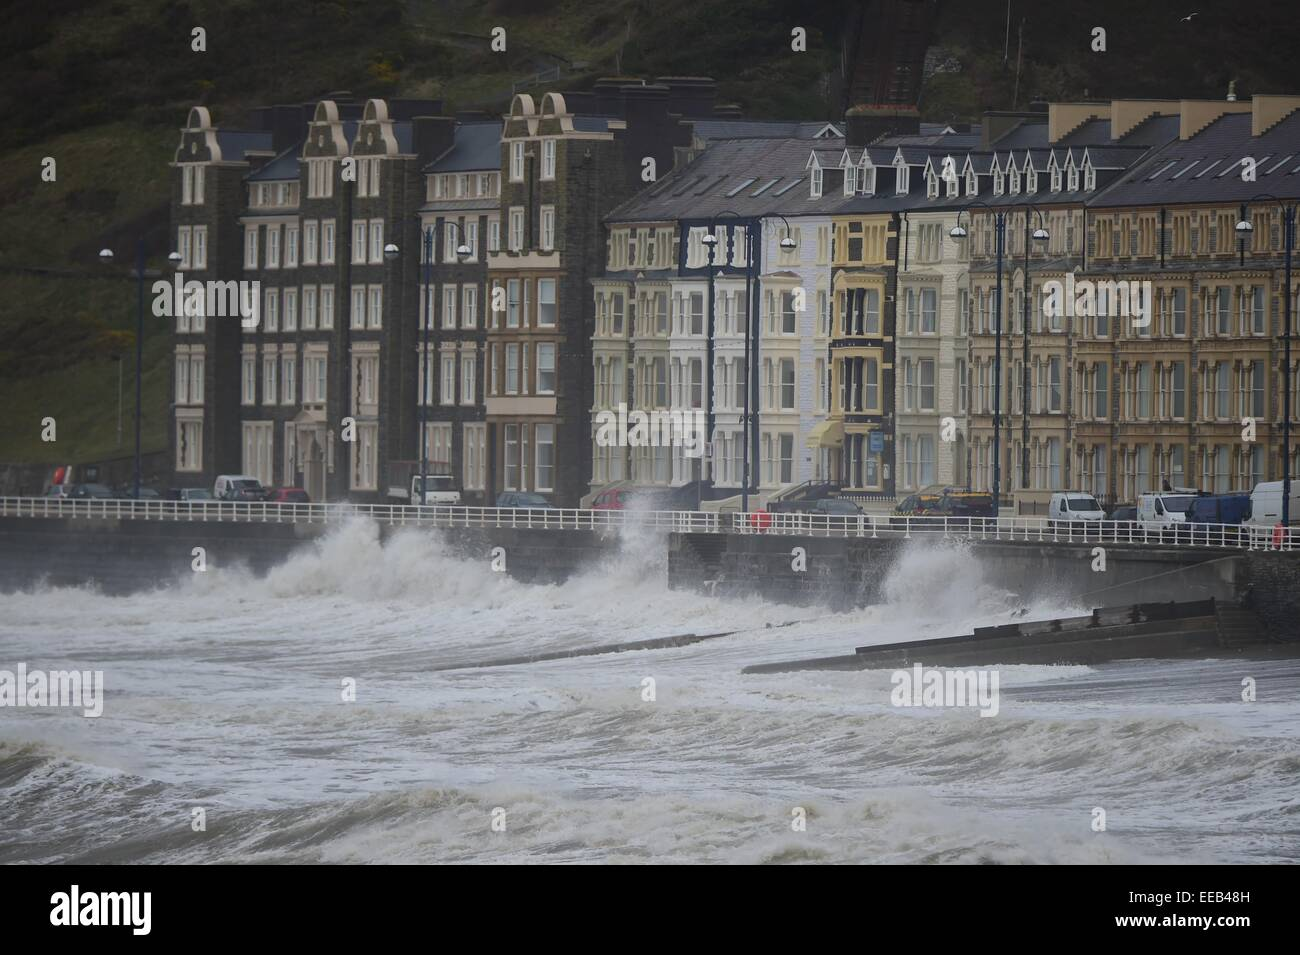 Aberystwyth, Wales, UK. 15th January, 2015. UK Weather: Gale force winds and stormy seas continue to batter the - Stock Image